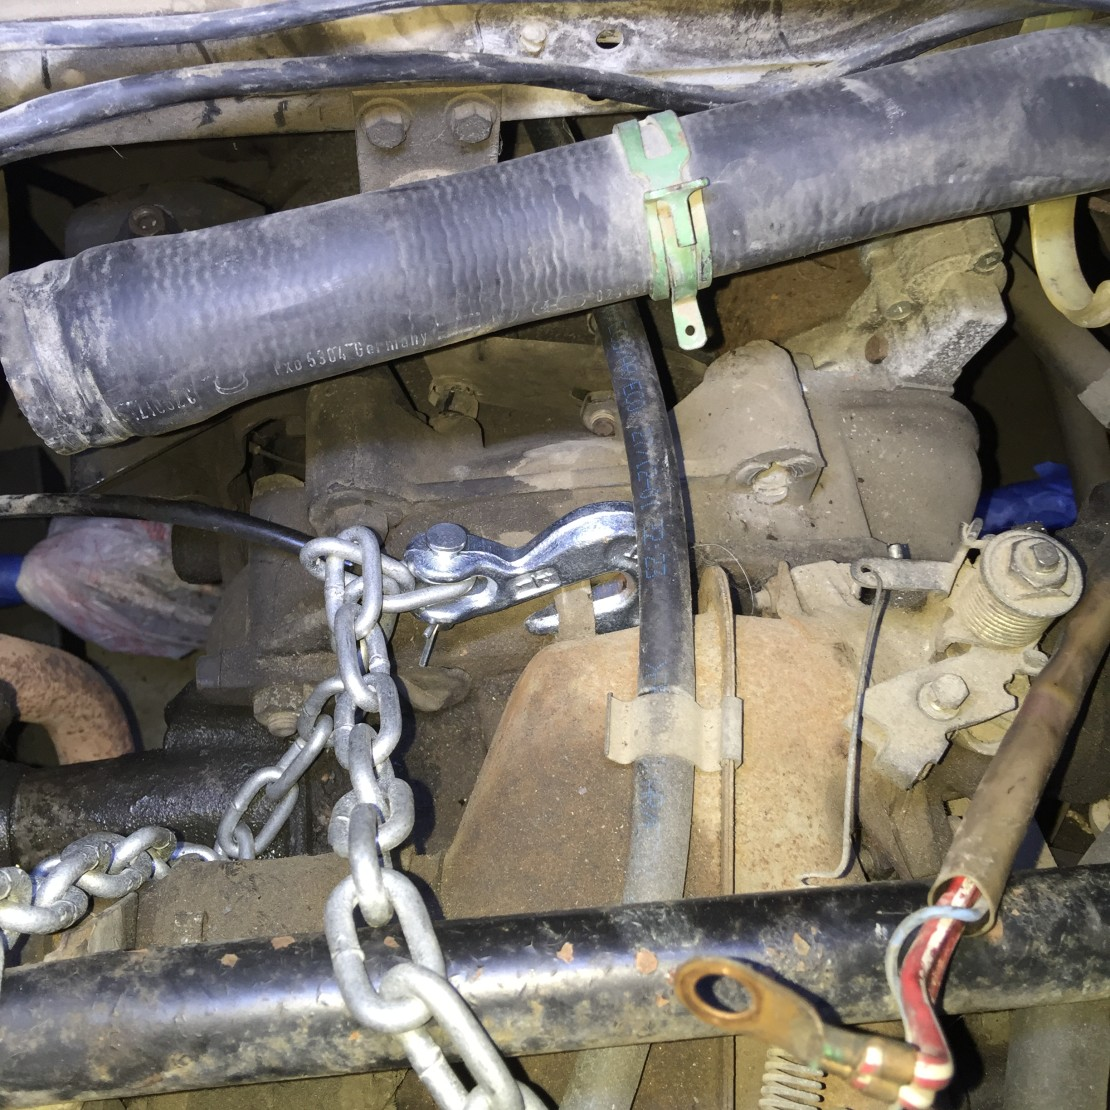 wbx-and-transaxle-removal-15.jpg